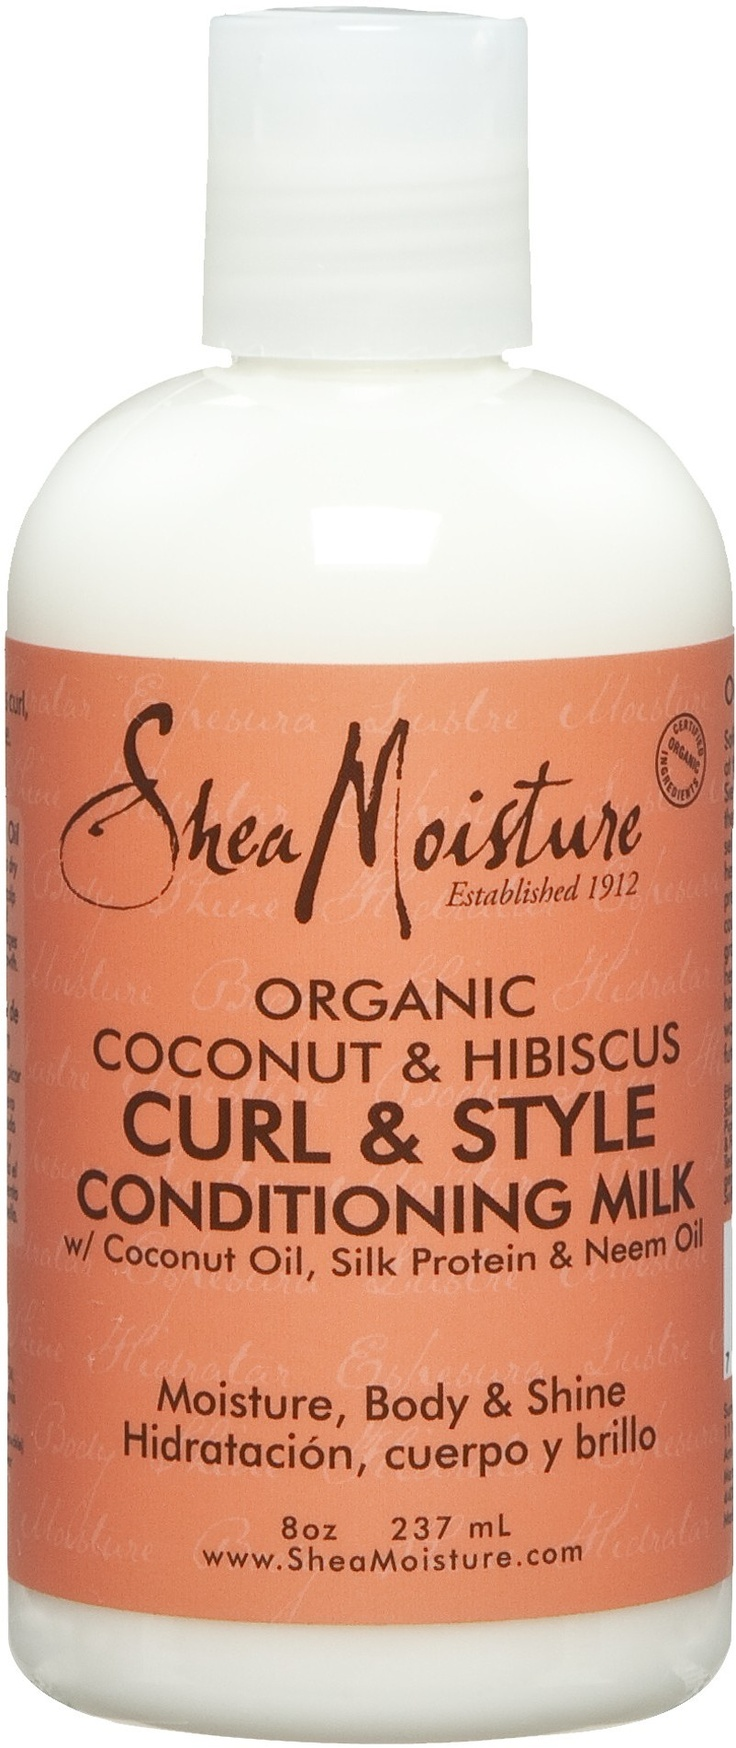 This is probably my favorite Shea Moisture product. Works well on all my styles. Especially effective for definition with twist and braid -outs.